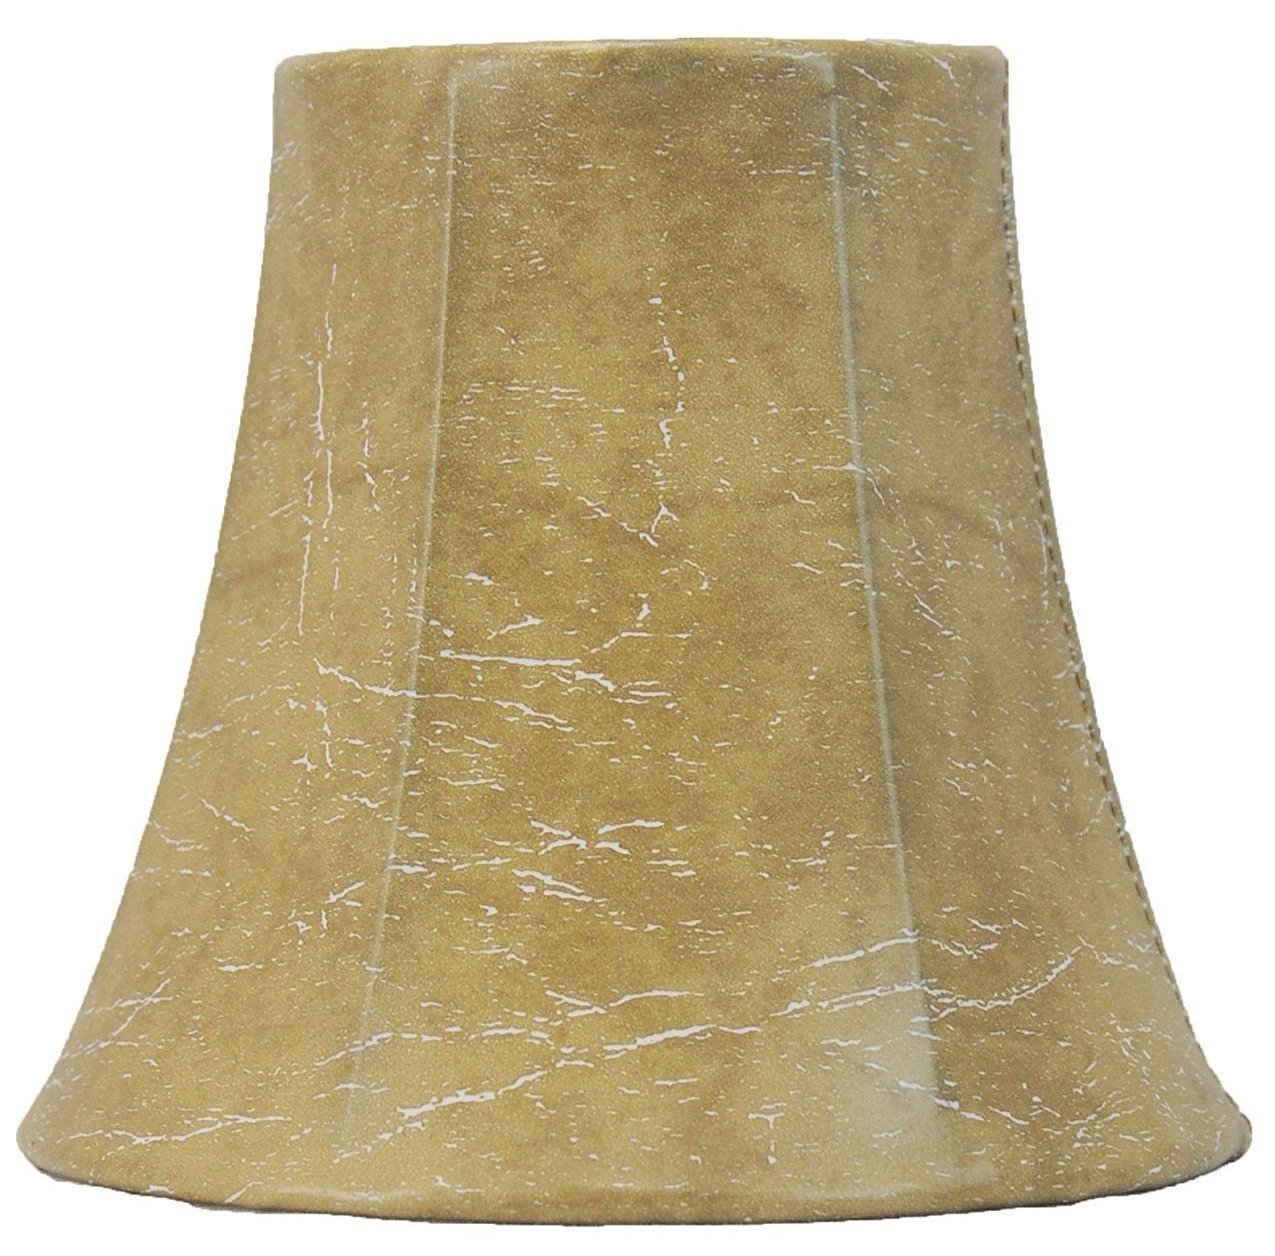 "Faux Leather Chandelier Mini Lamp Shade - 5"" and 6"" Sizes"